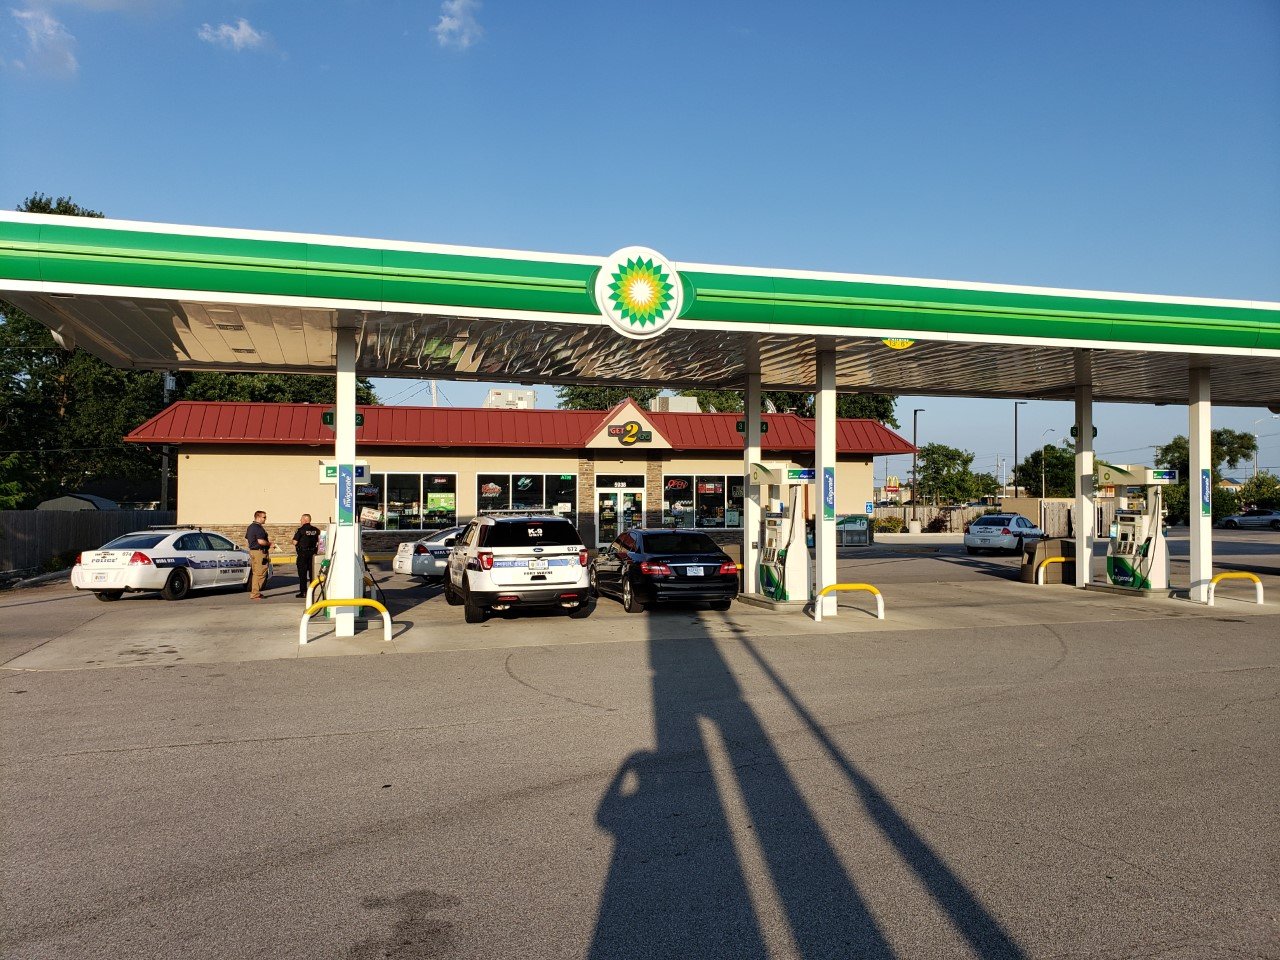 Police investigate armed robbery at BP gas station | WANE